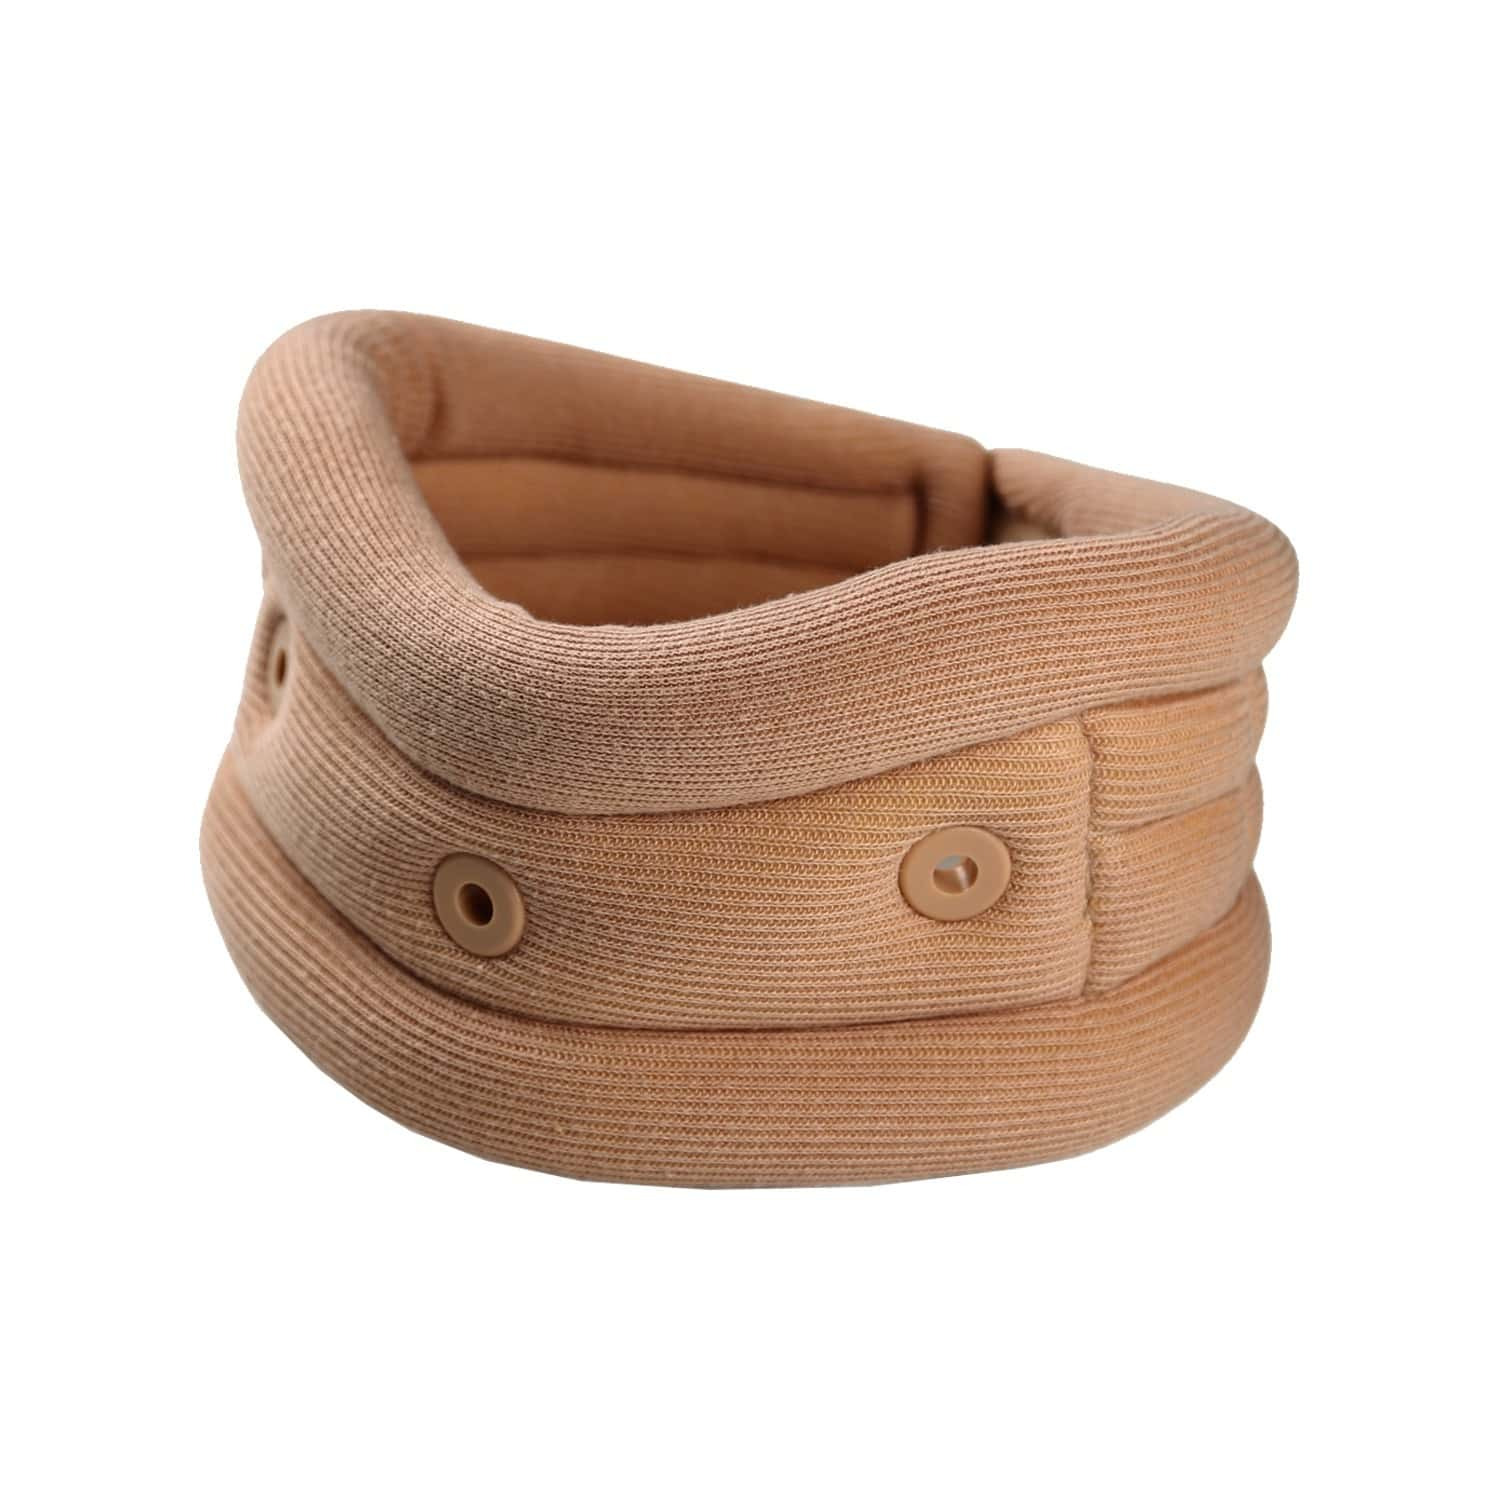 Tynor Cervical Collar Soft With Support ( Immobilization,comfort,ventilation) - Medium